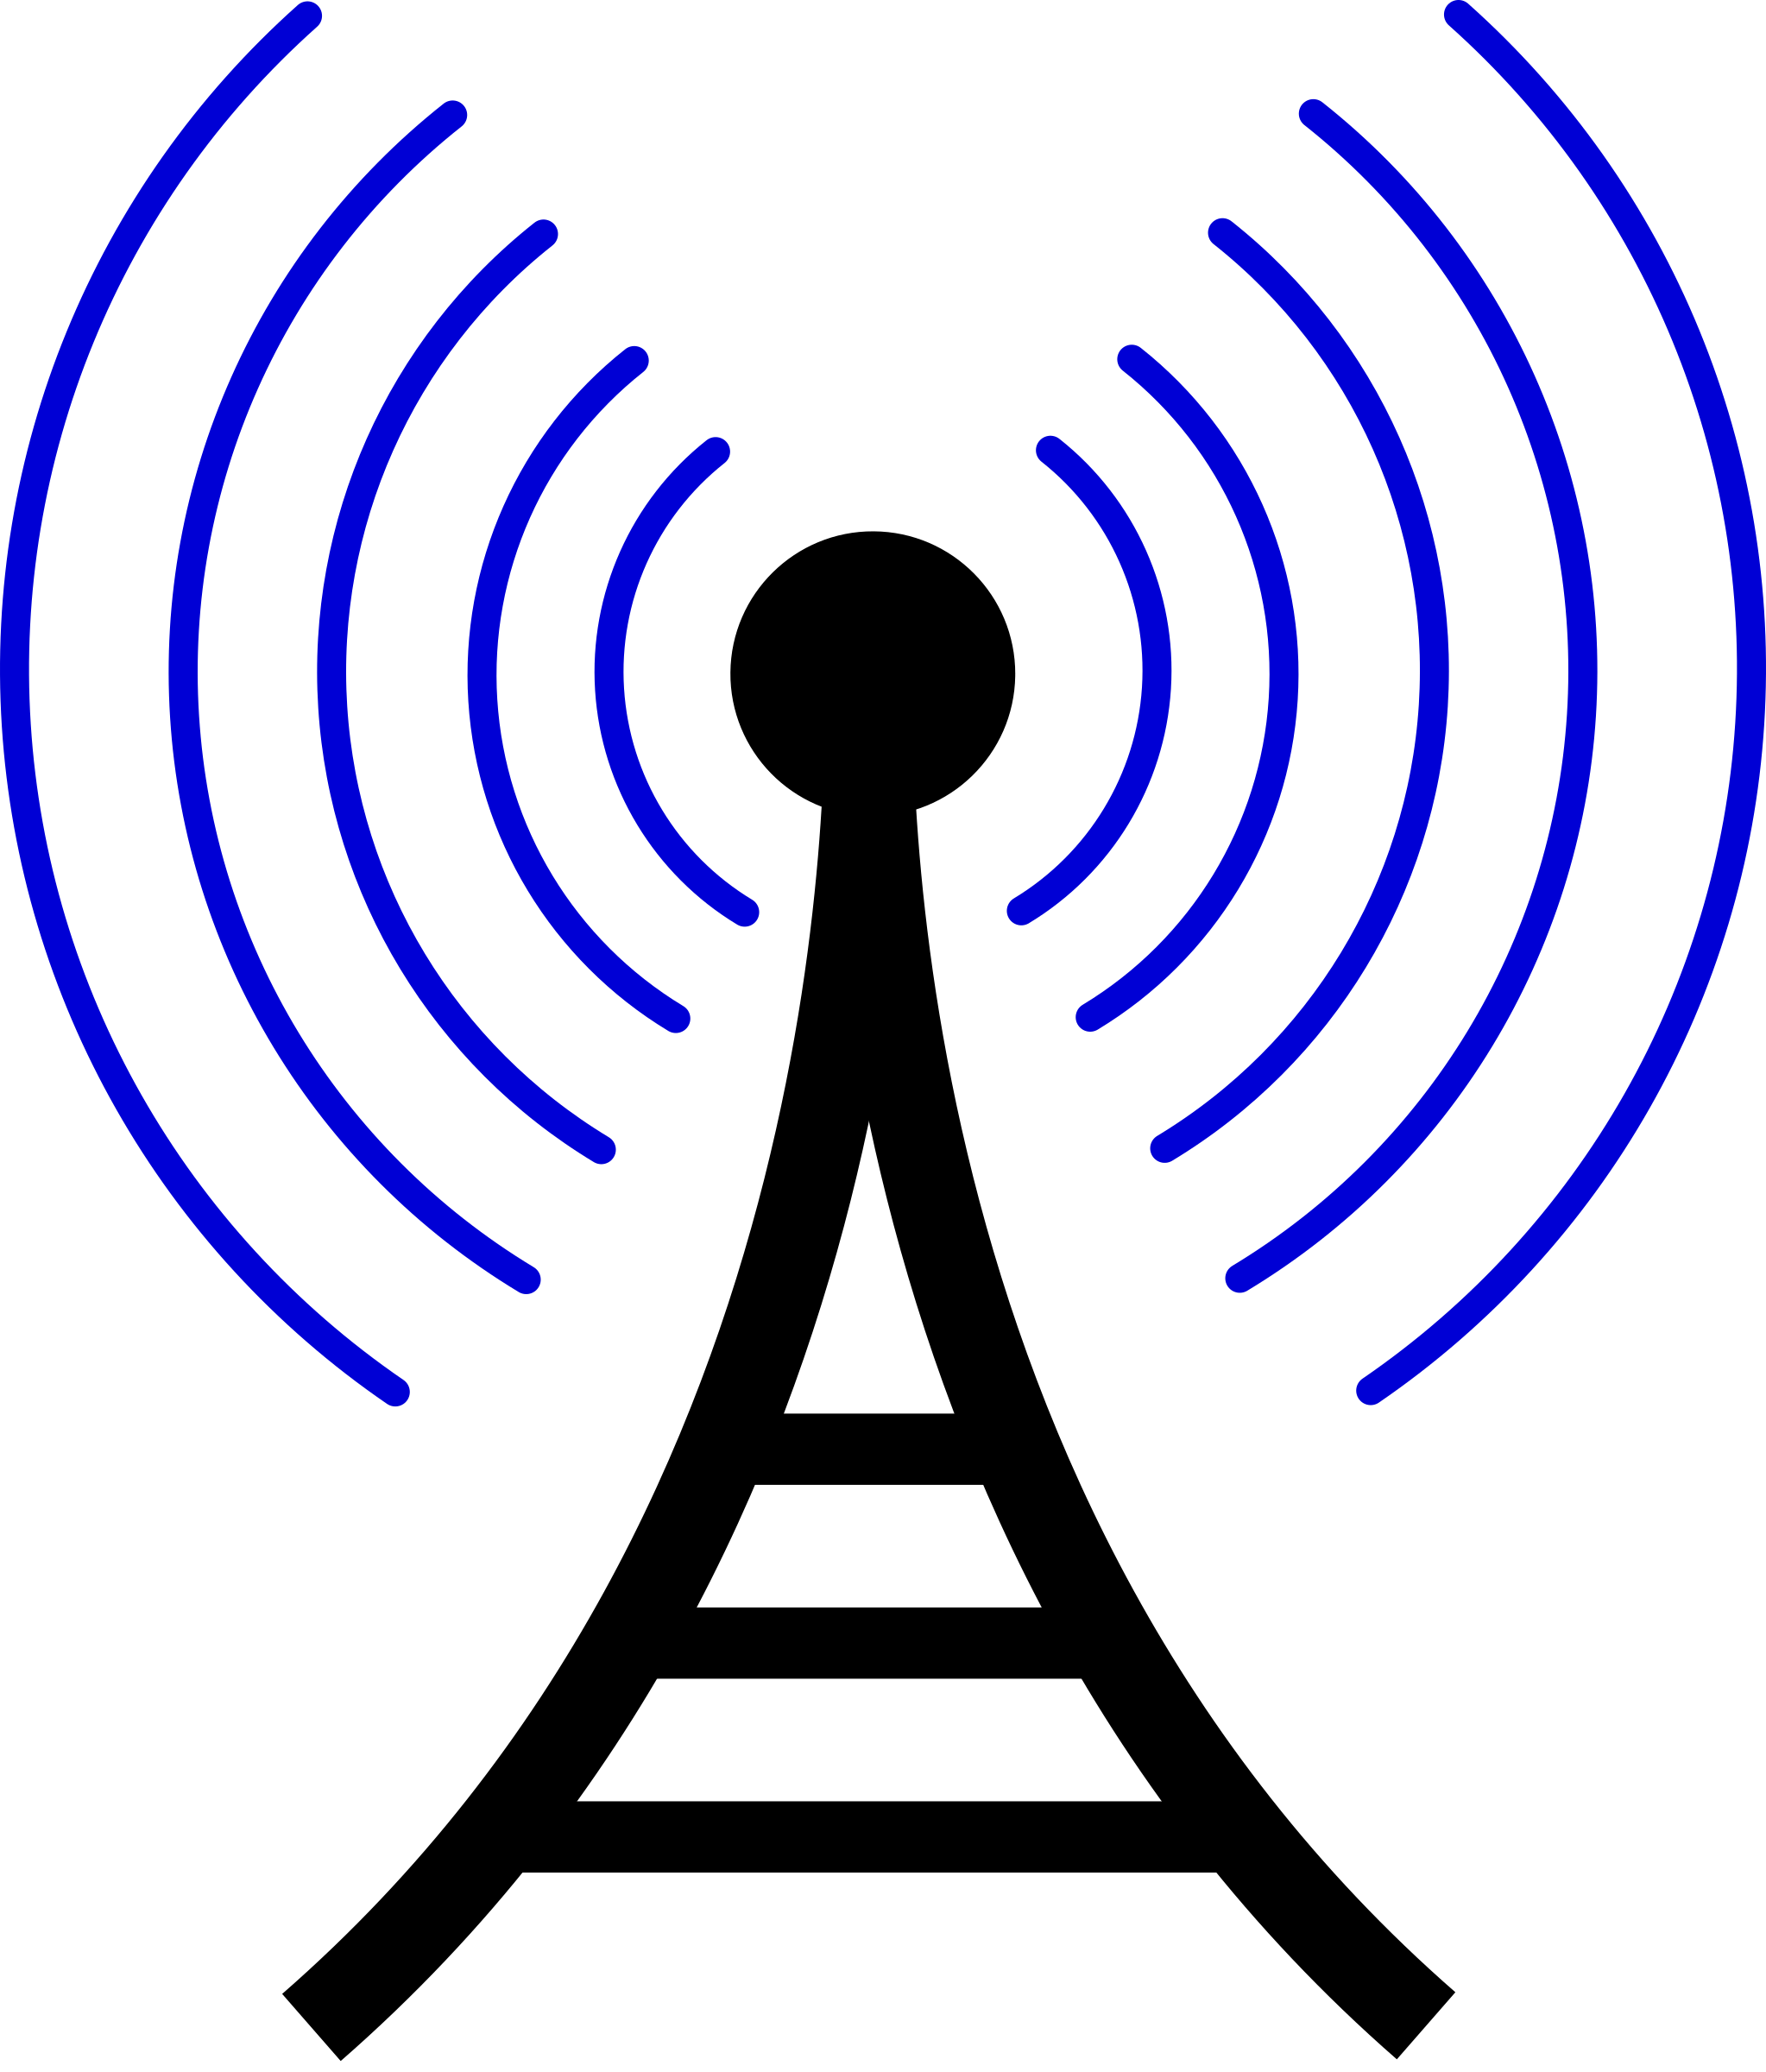 Air waves png. Clipart radio wireless tower